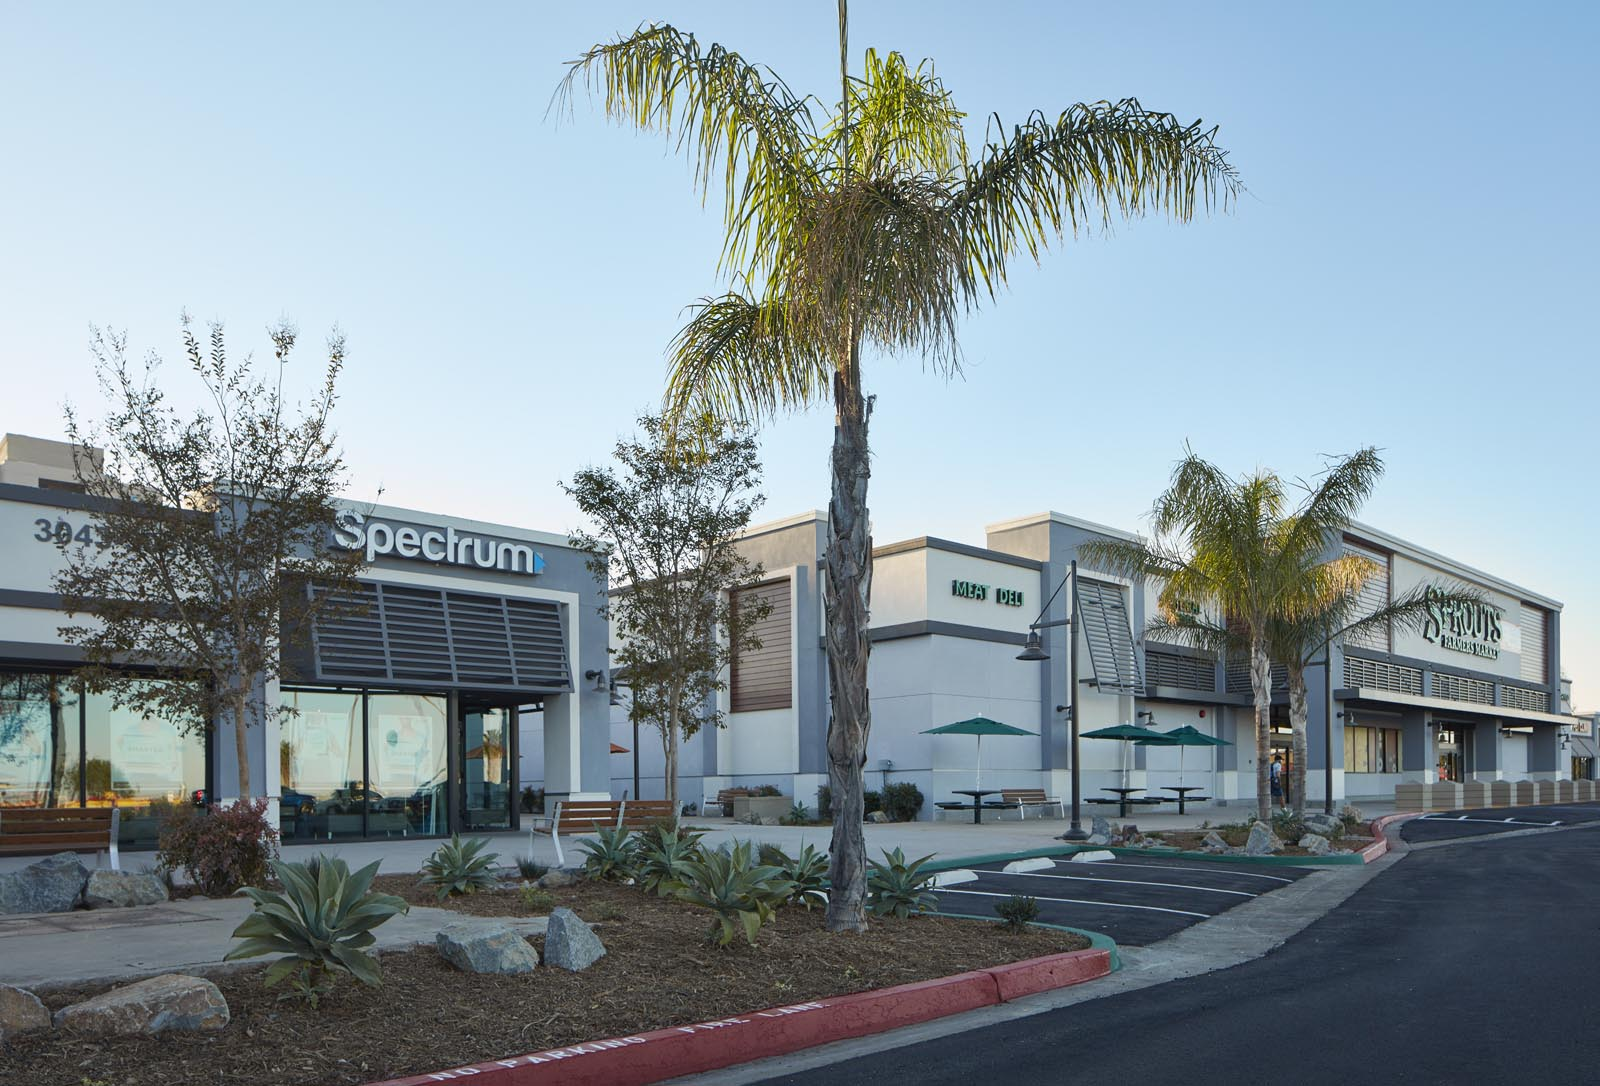 Dempsey Clairemont Village Shopping Center